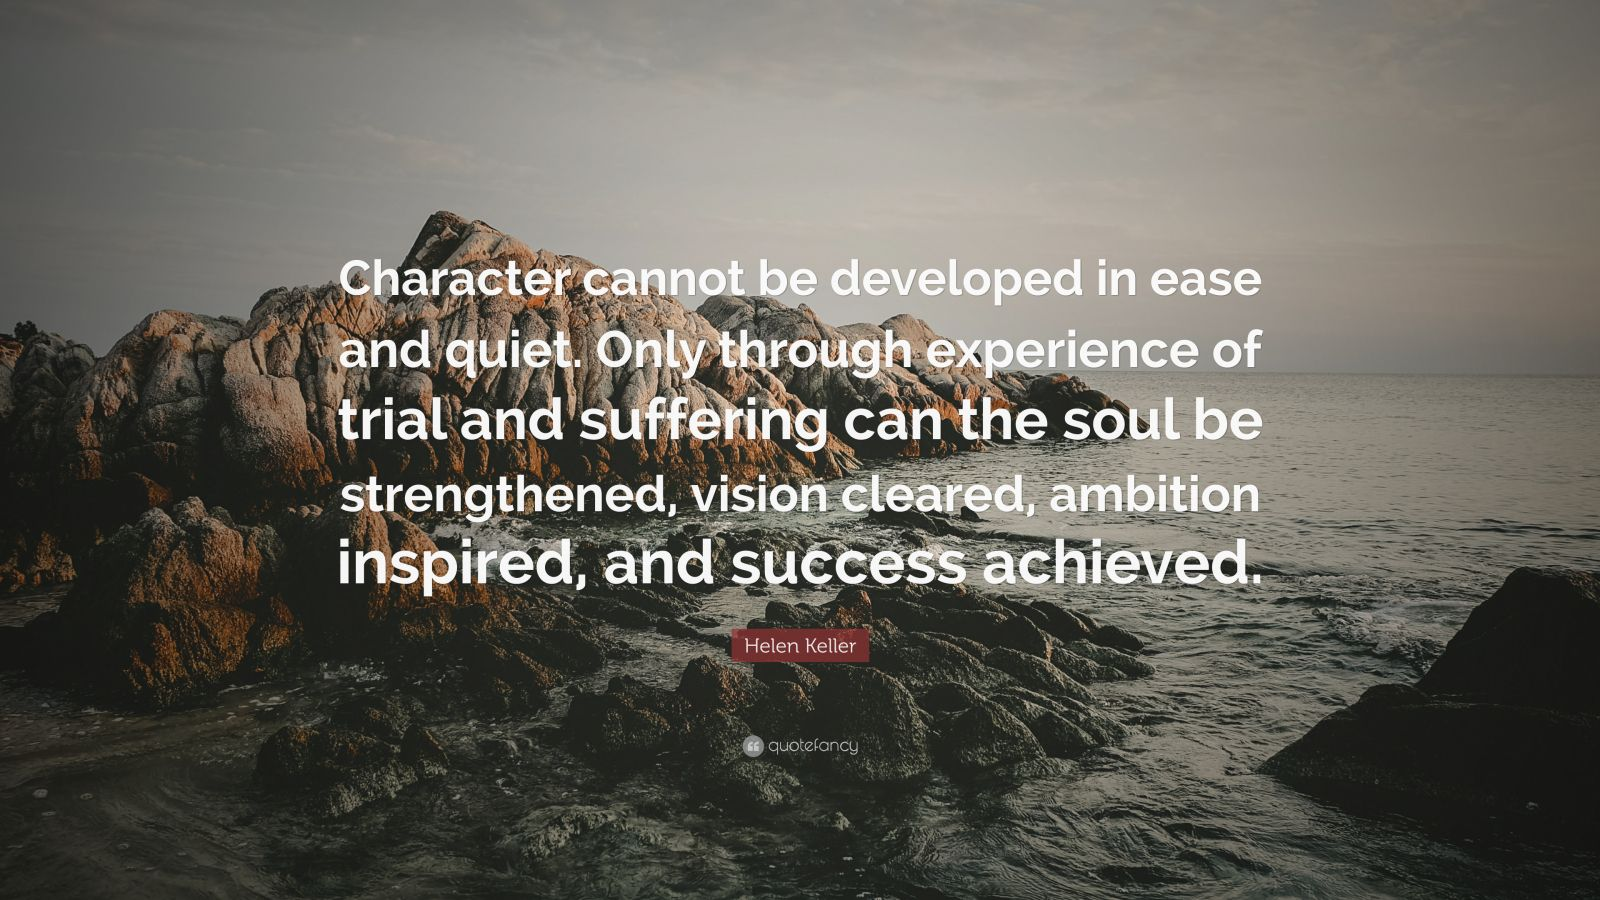 character cannot be developed in ease Character cannot be developed in ease and quiet only through experience of  trial and suffering can the soul be strengthened, vision cleared, ambition inspired .